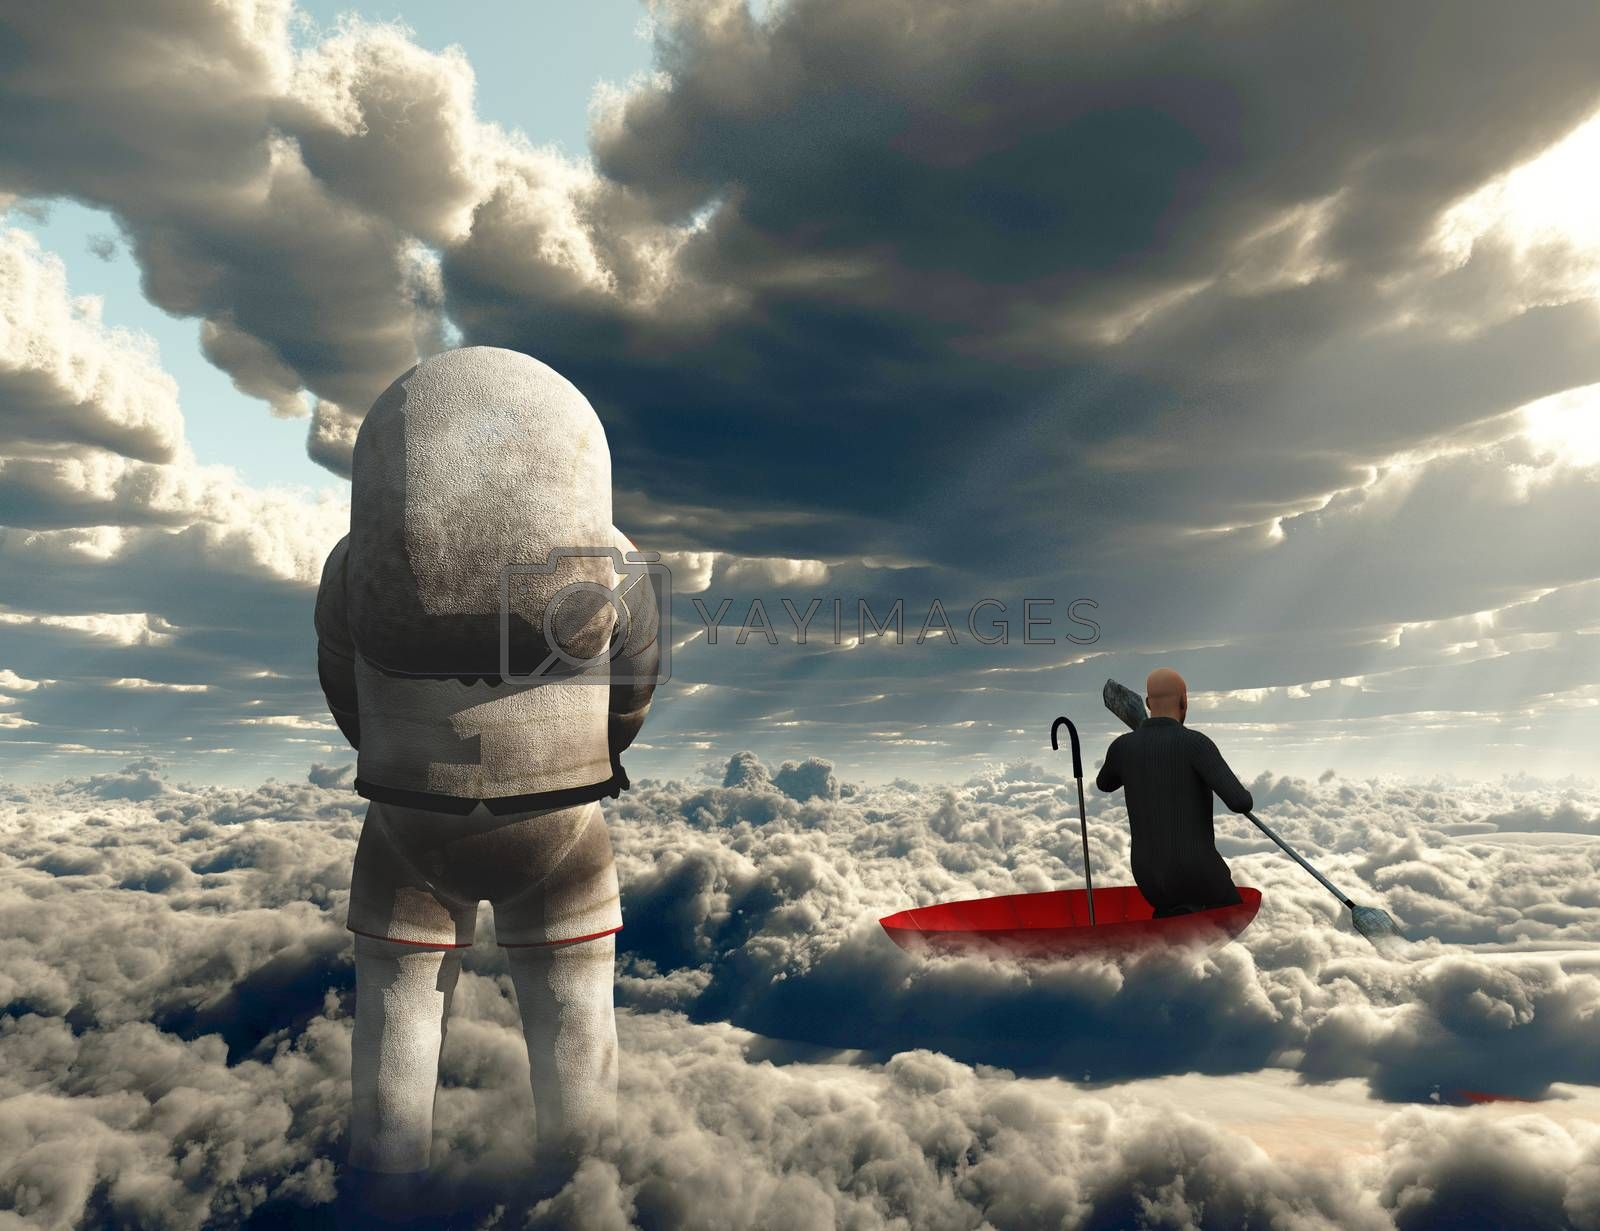 Surreal painting. Man floats in red umbrella. Figure of astronaut. 3D rendering